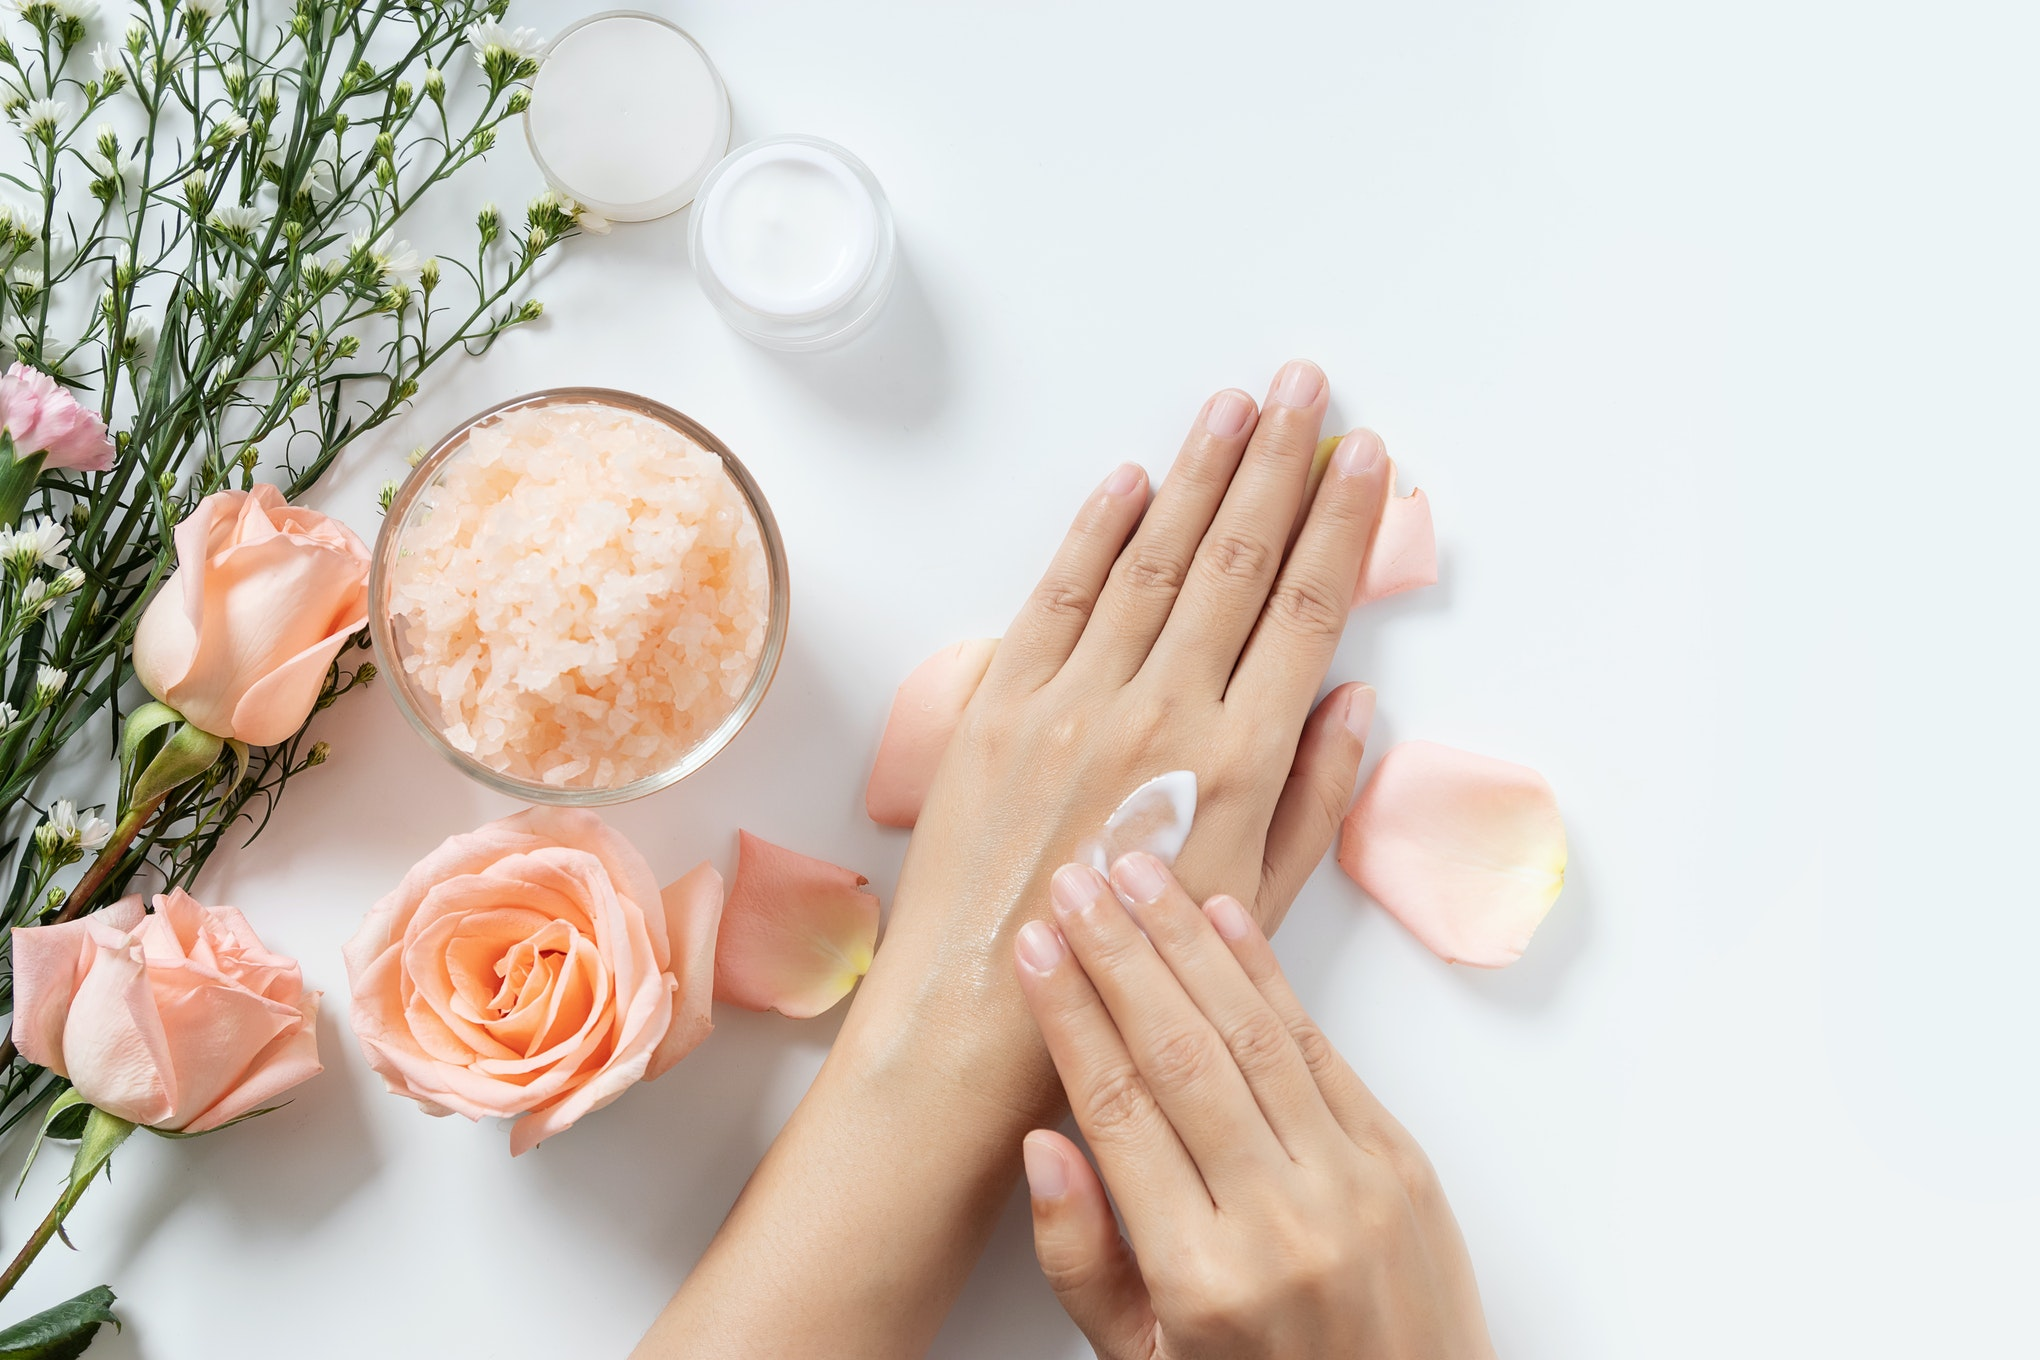 Products and Pointers to Help Address Hand Wrinkles